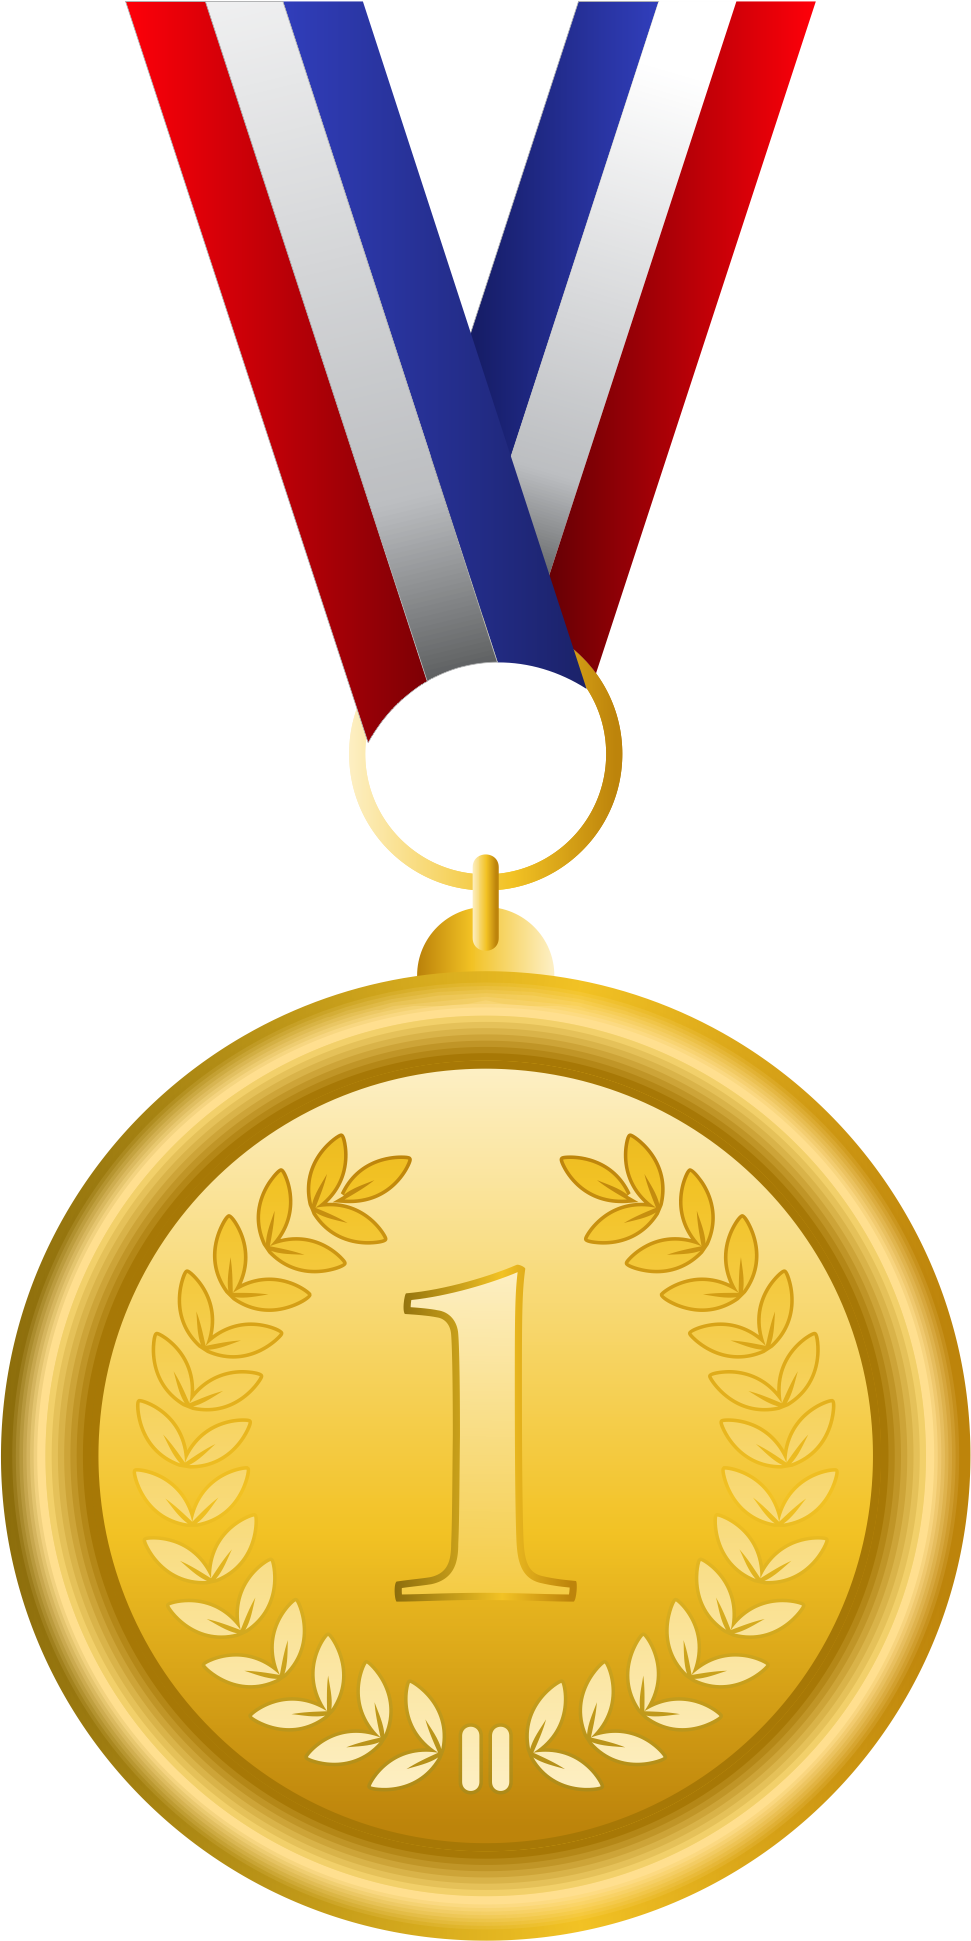 Gold bronze clip art. Torch clipart olympic medal